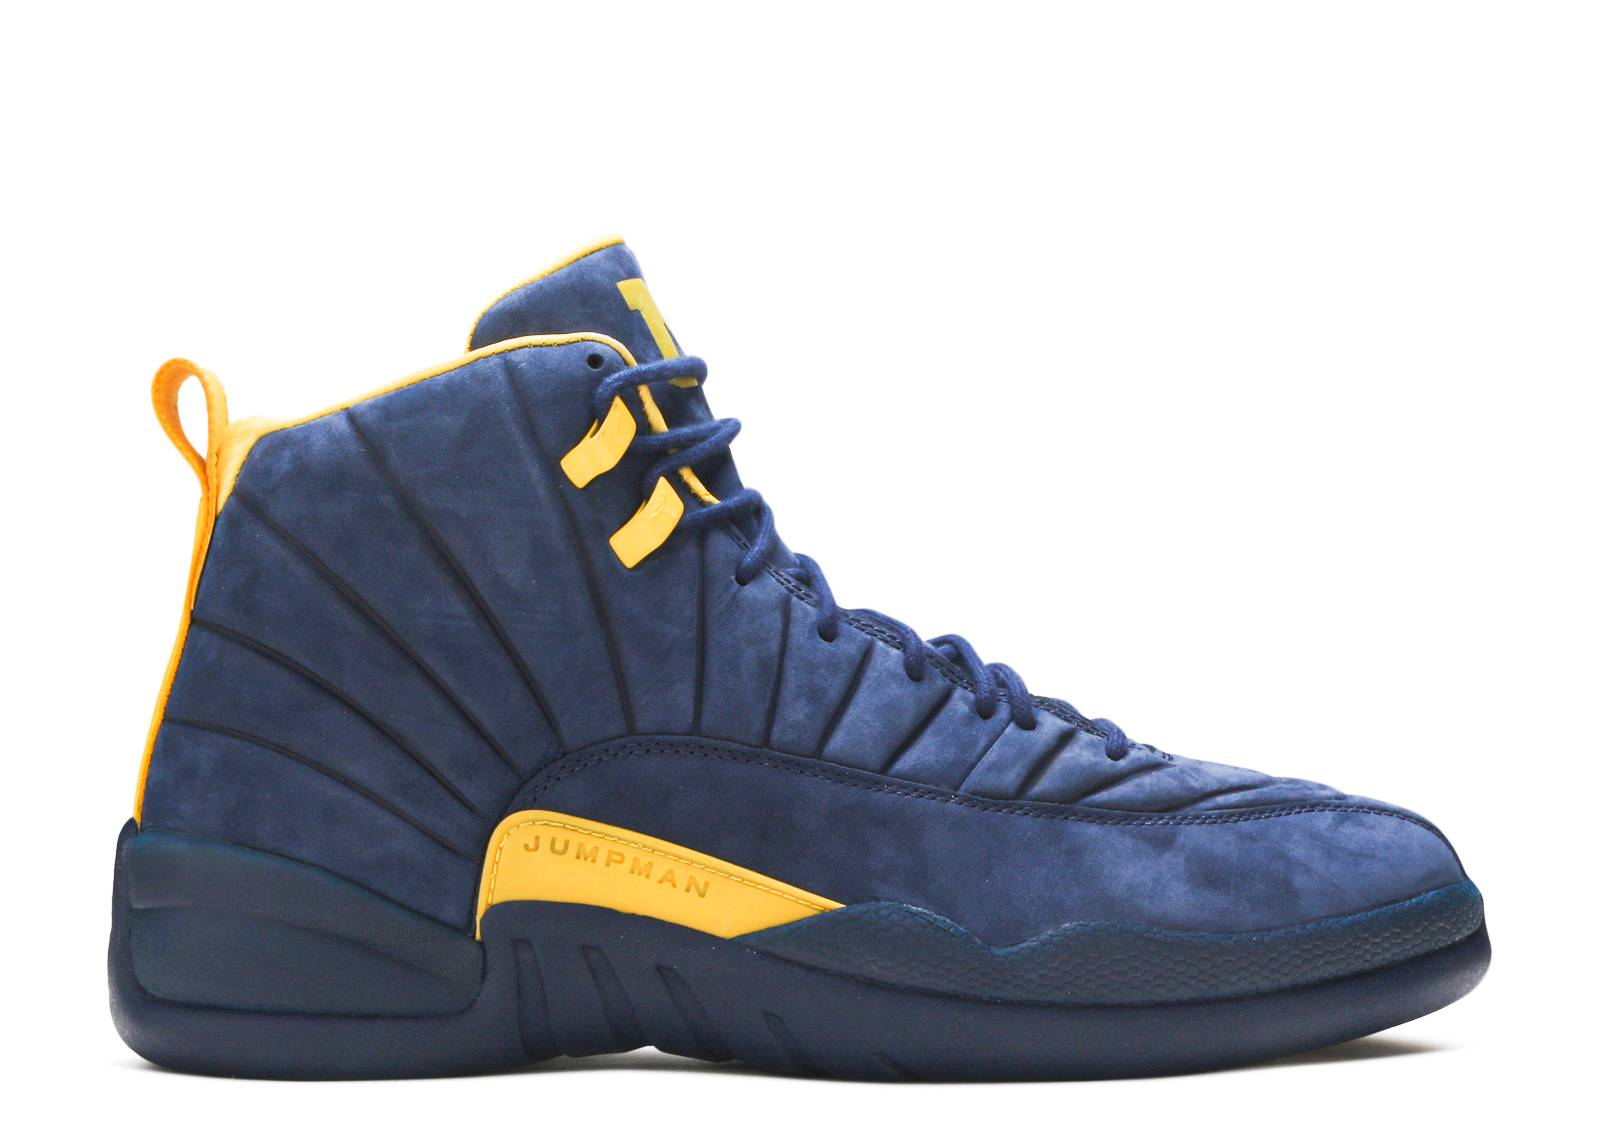 6f4a504dadd Air Jordan 12 Retro Pe